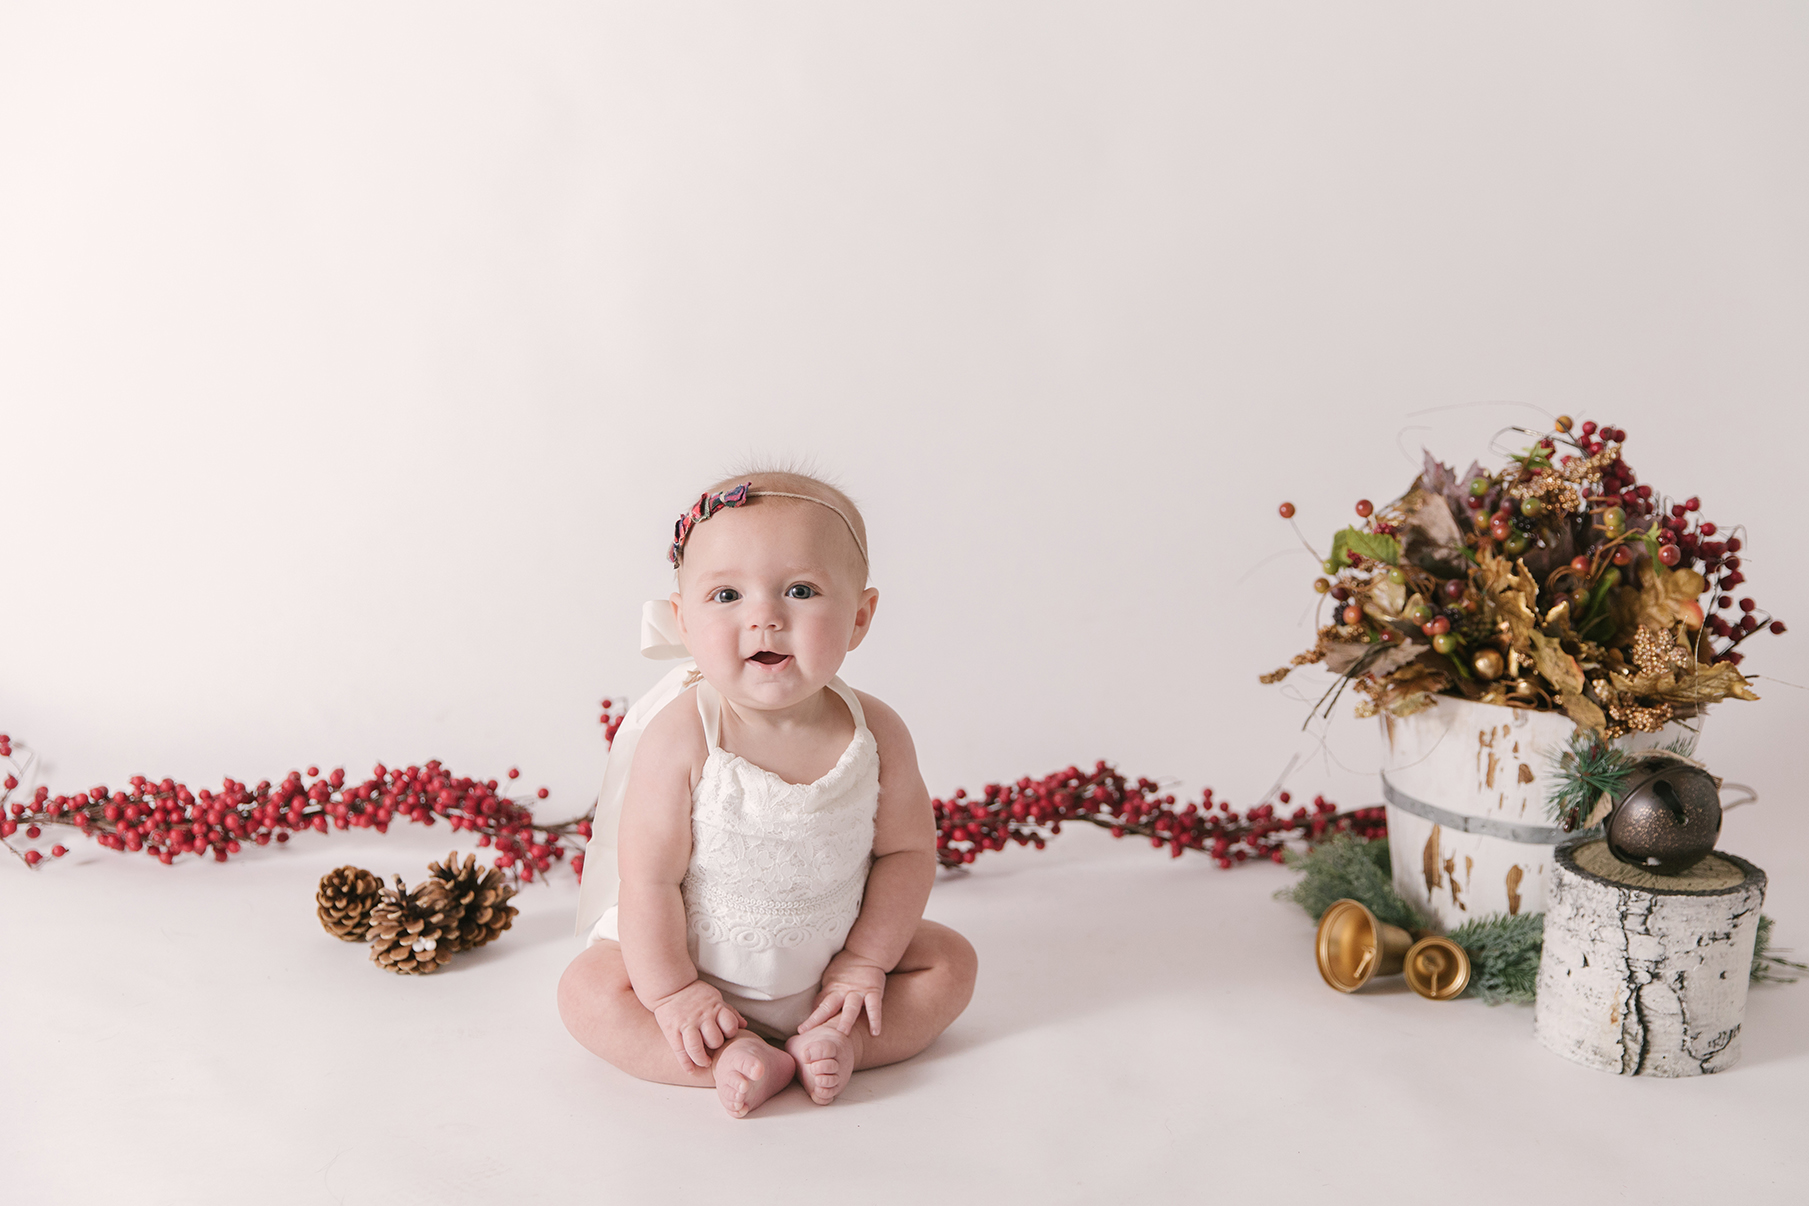 six-month-milestone-sitter-session-youngsotwn-and-warren-ohio-child-and-family-photographer-christie-leigh-photo_6.jpg